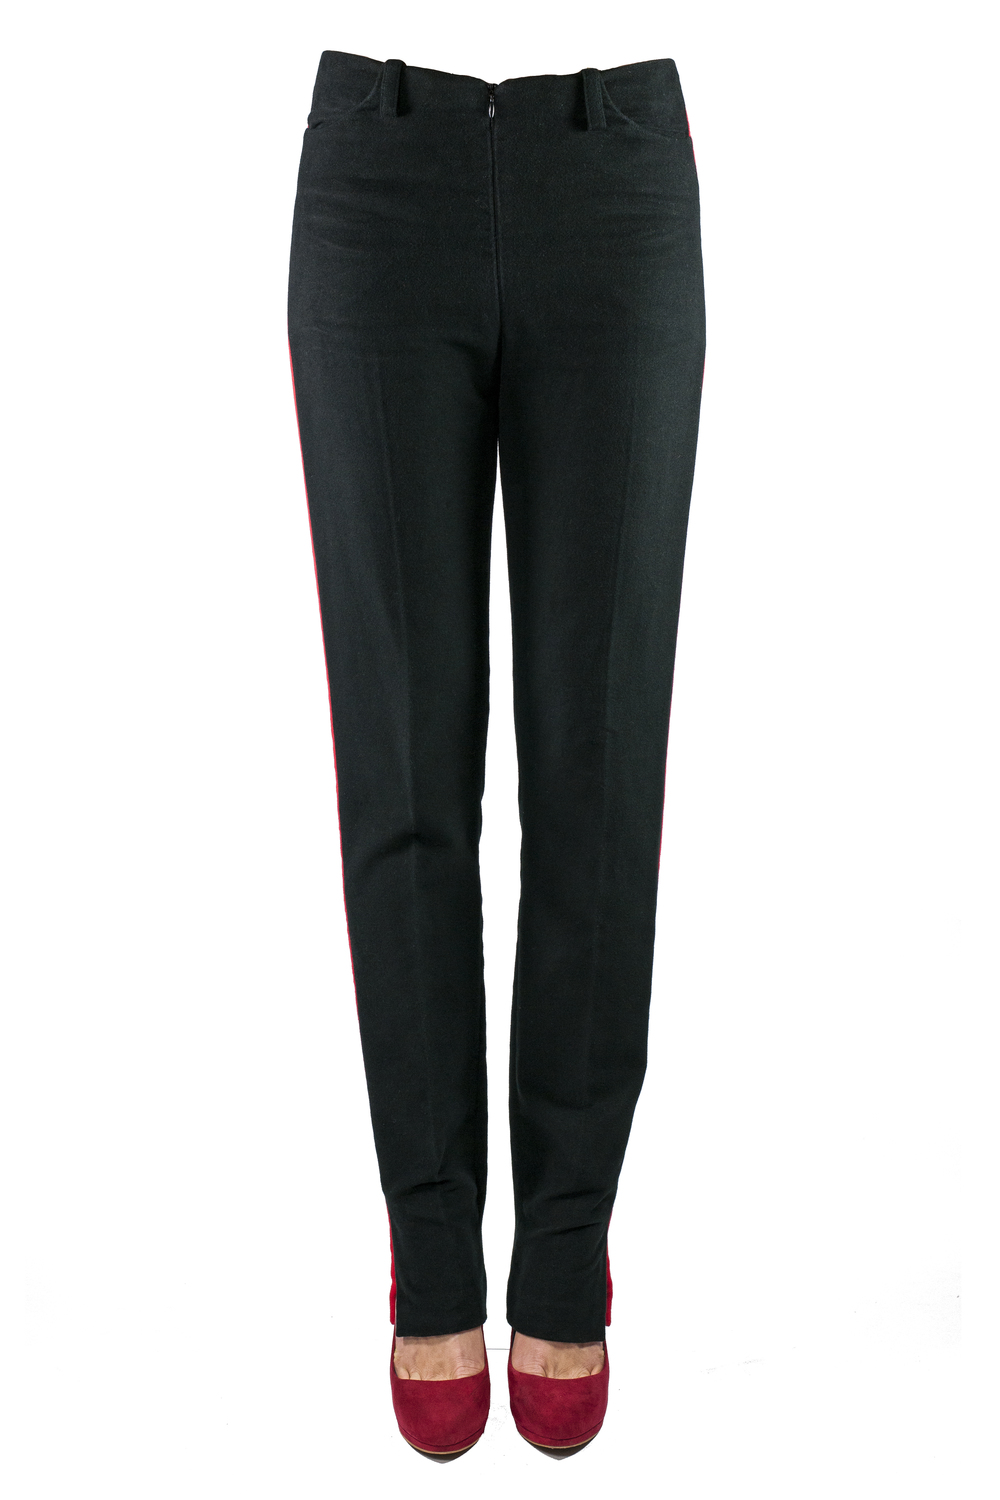 Womens trousers front JAN.jpg